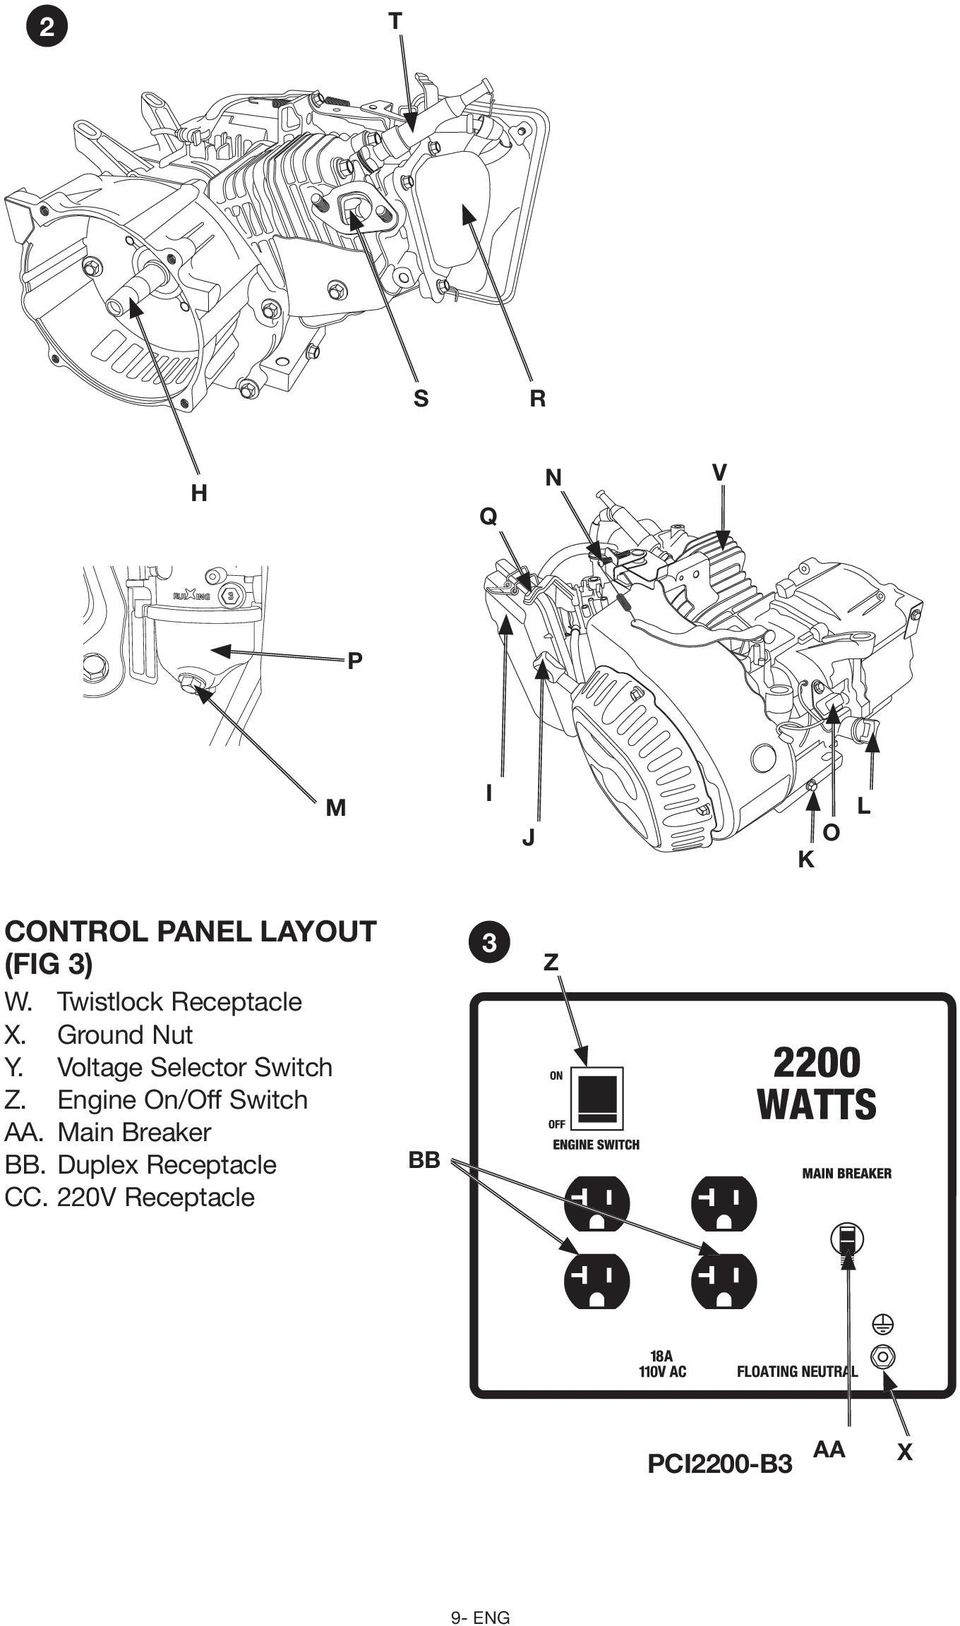 Voltage Selector Switch Z. Engine On/Off Switch AA.